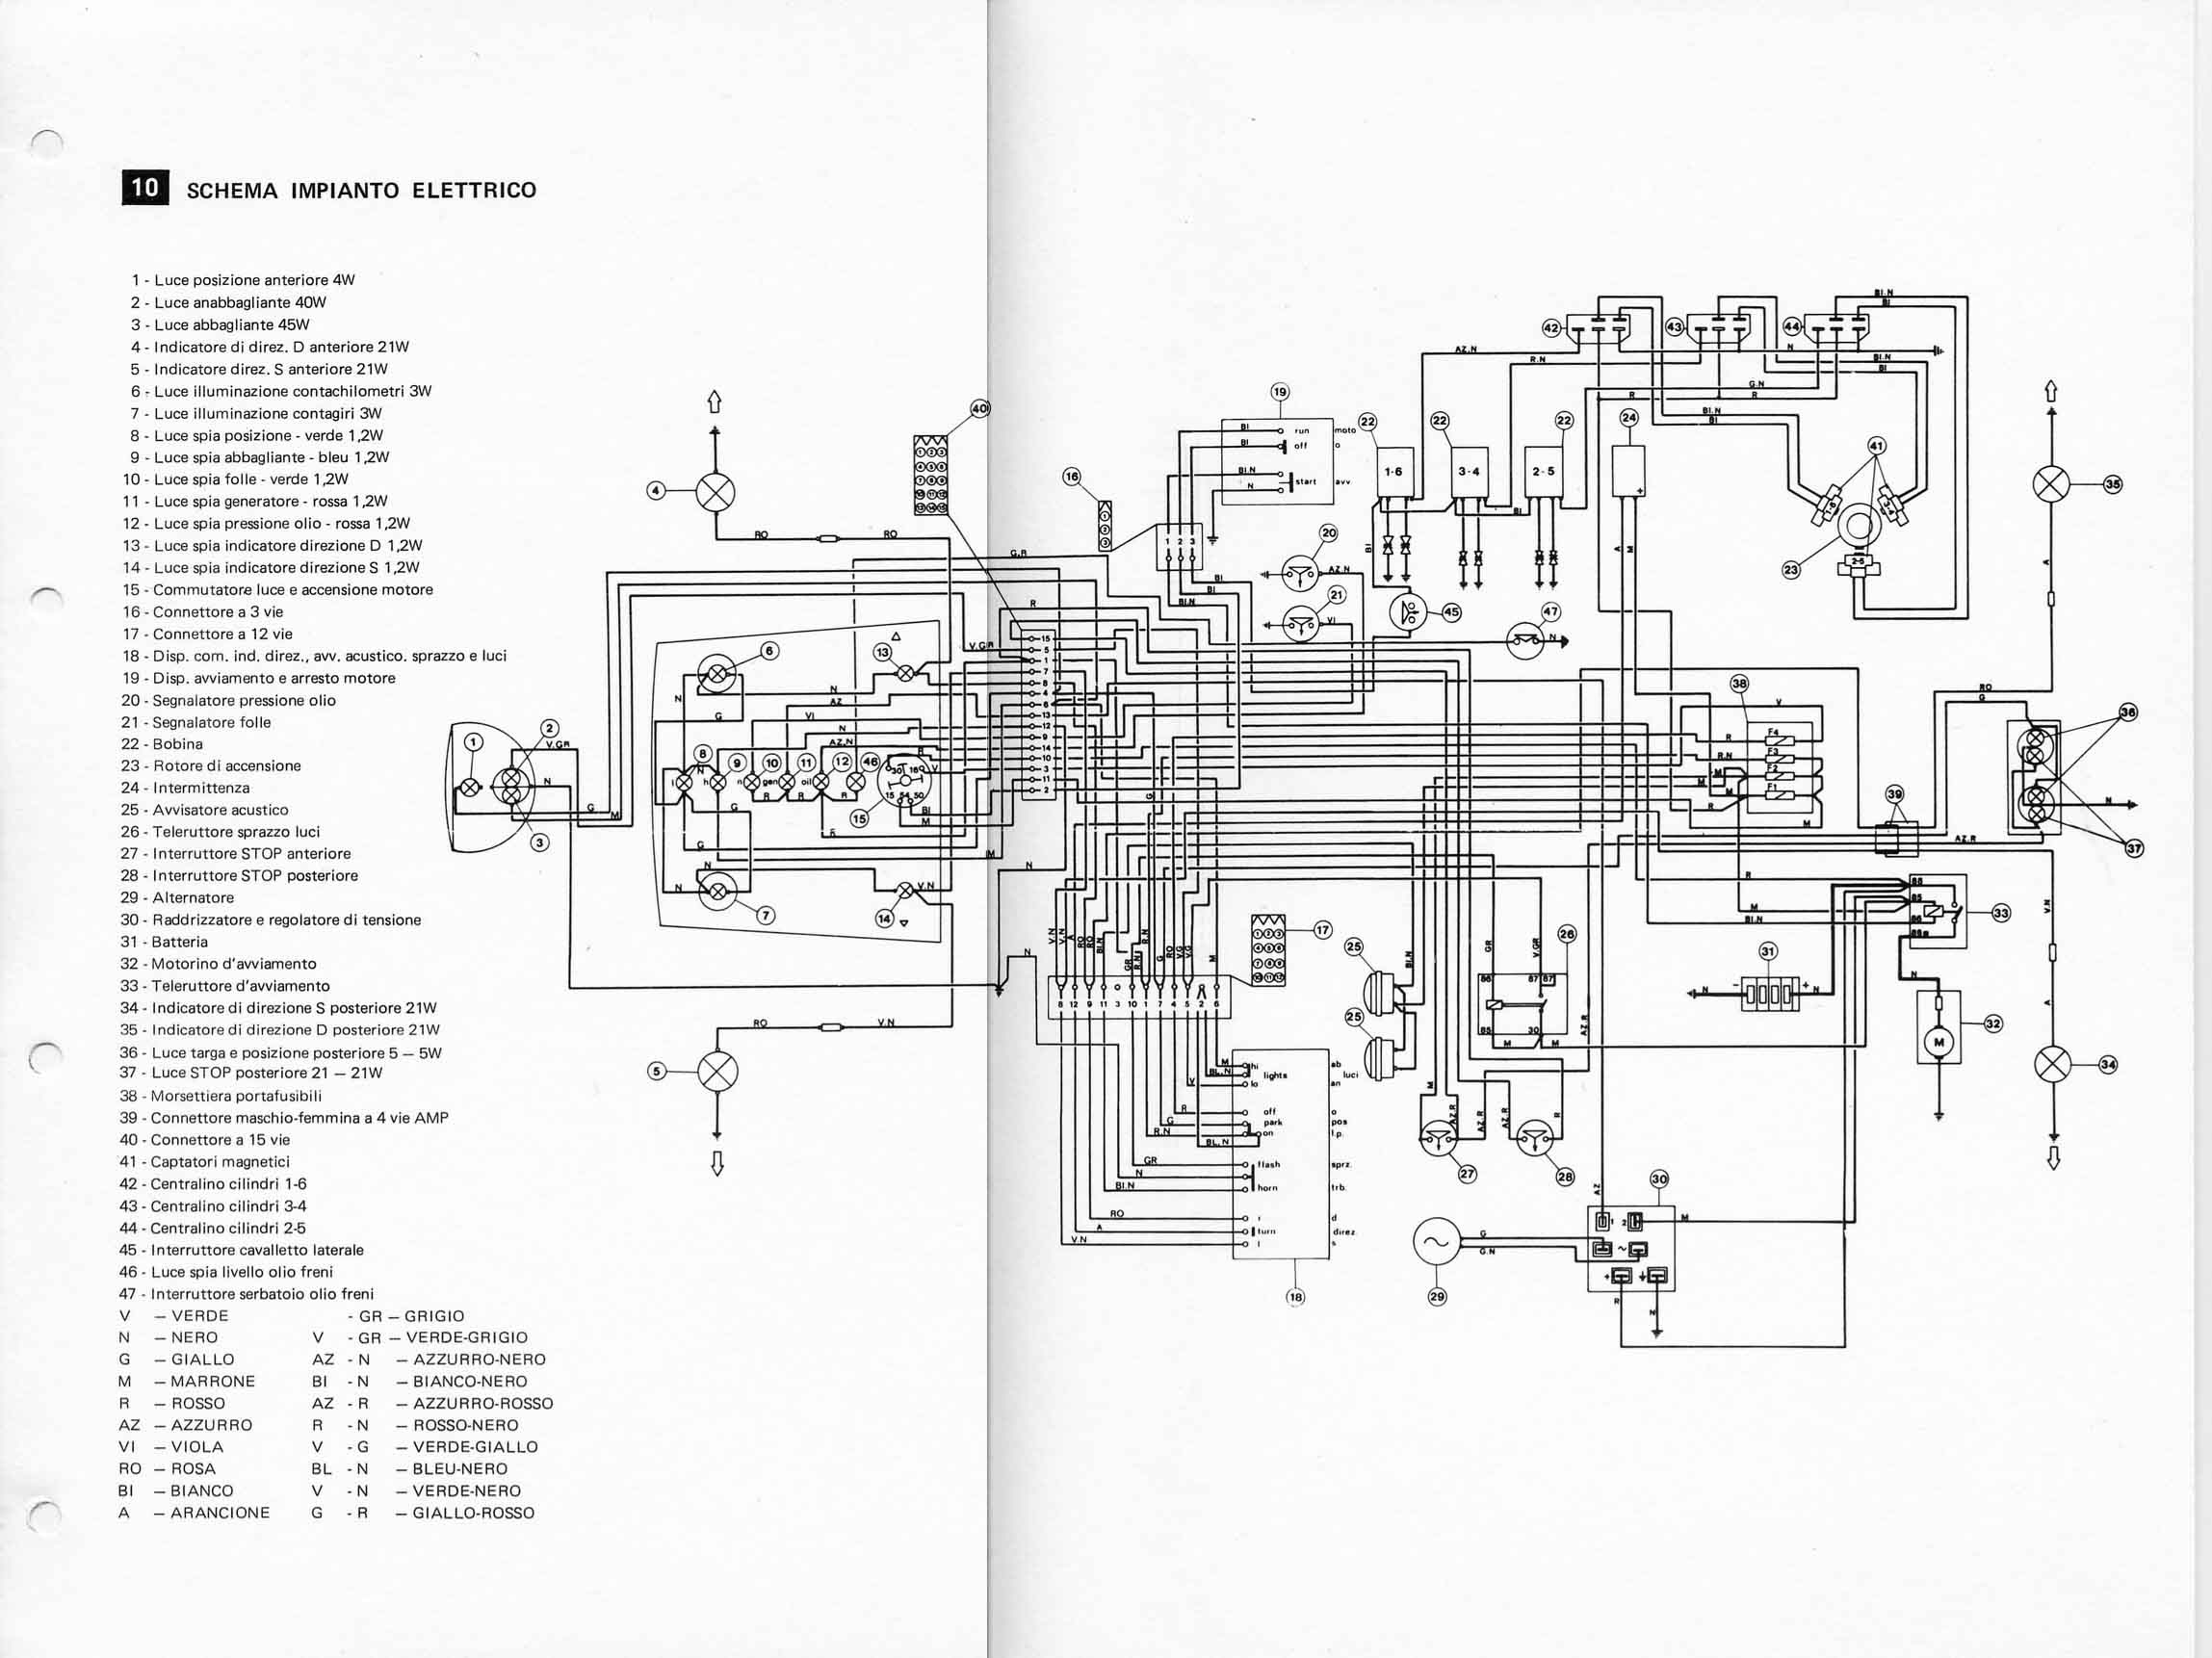 ultranautics wiring diagram ultranautics automotive wiring diagrams